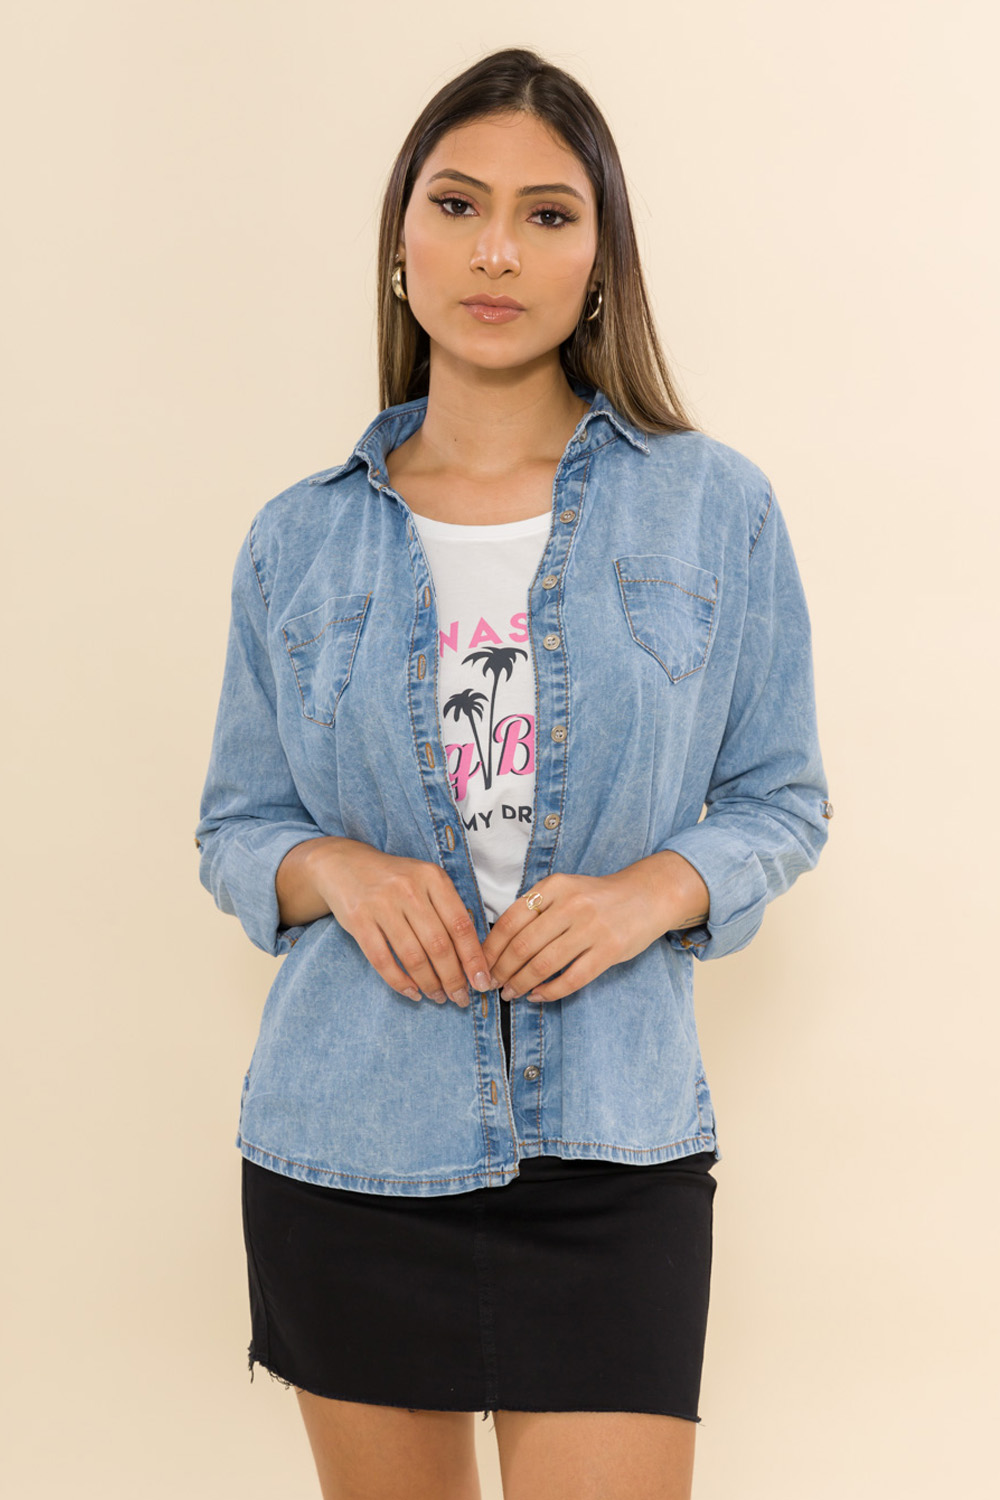 CAMISETE JEANS KEYTE - JEANS CLARO